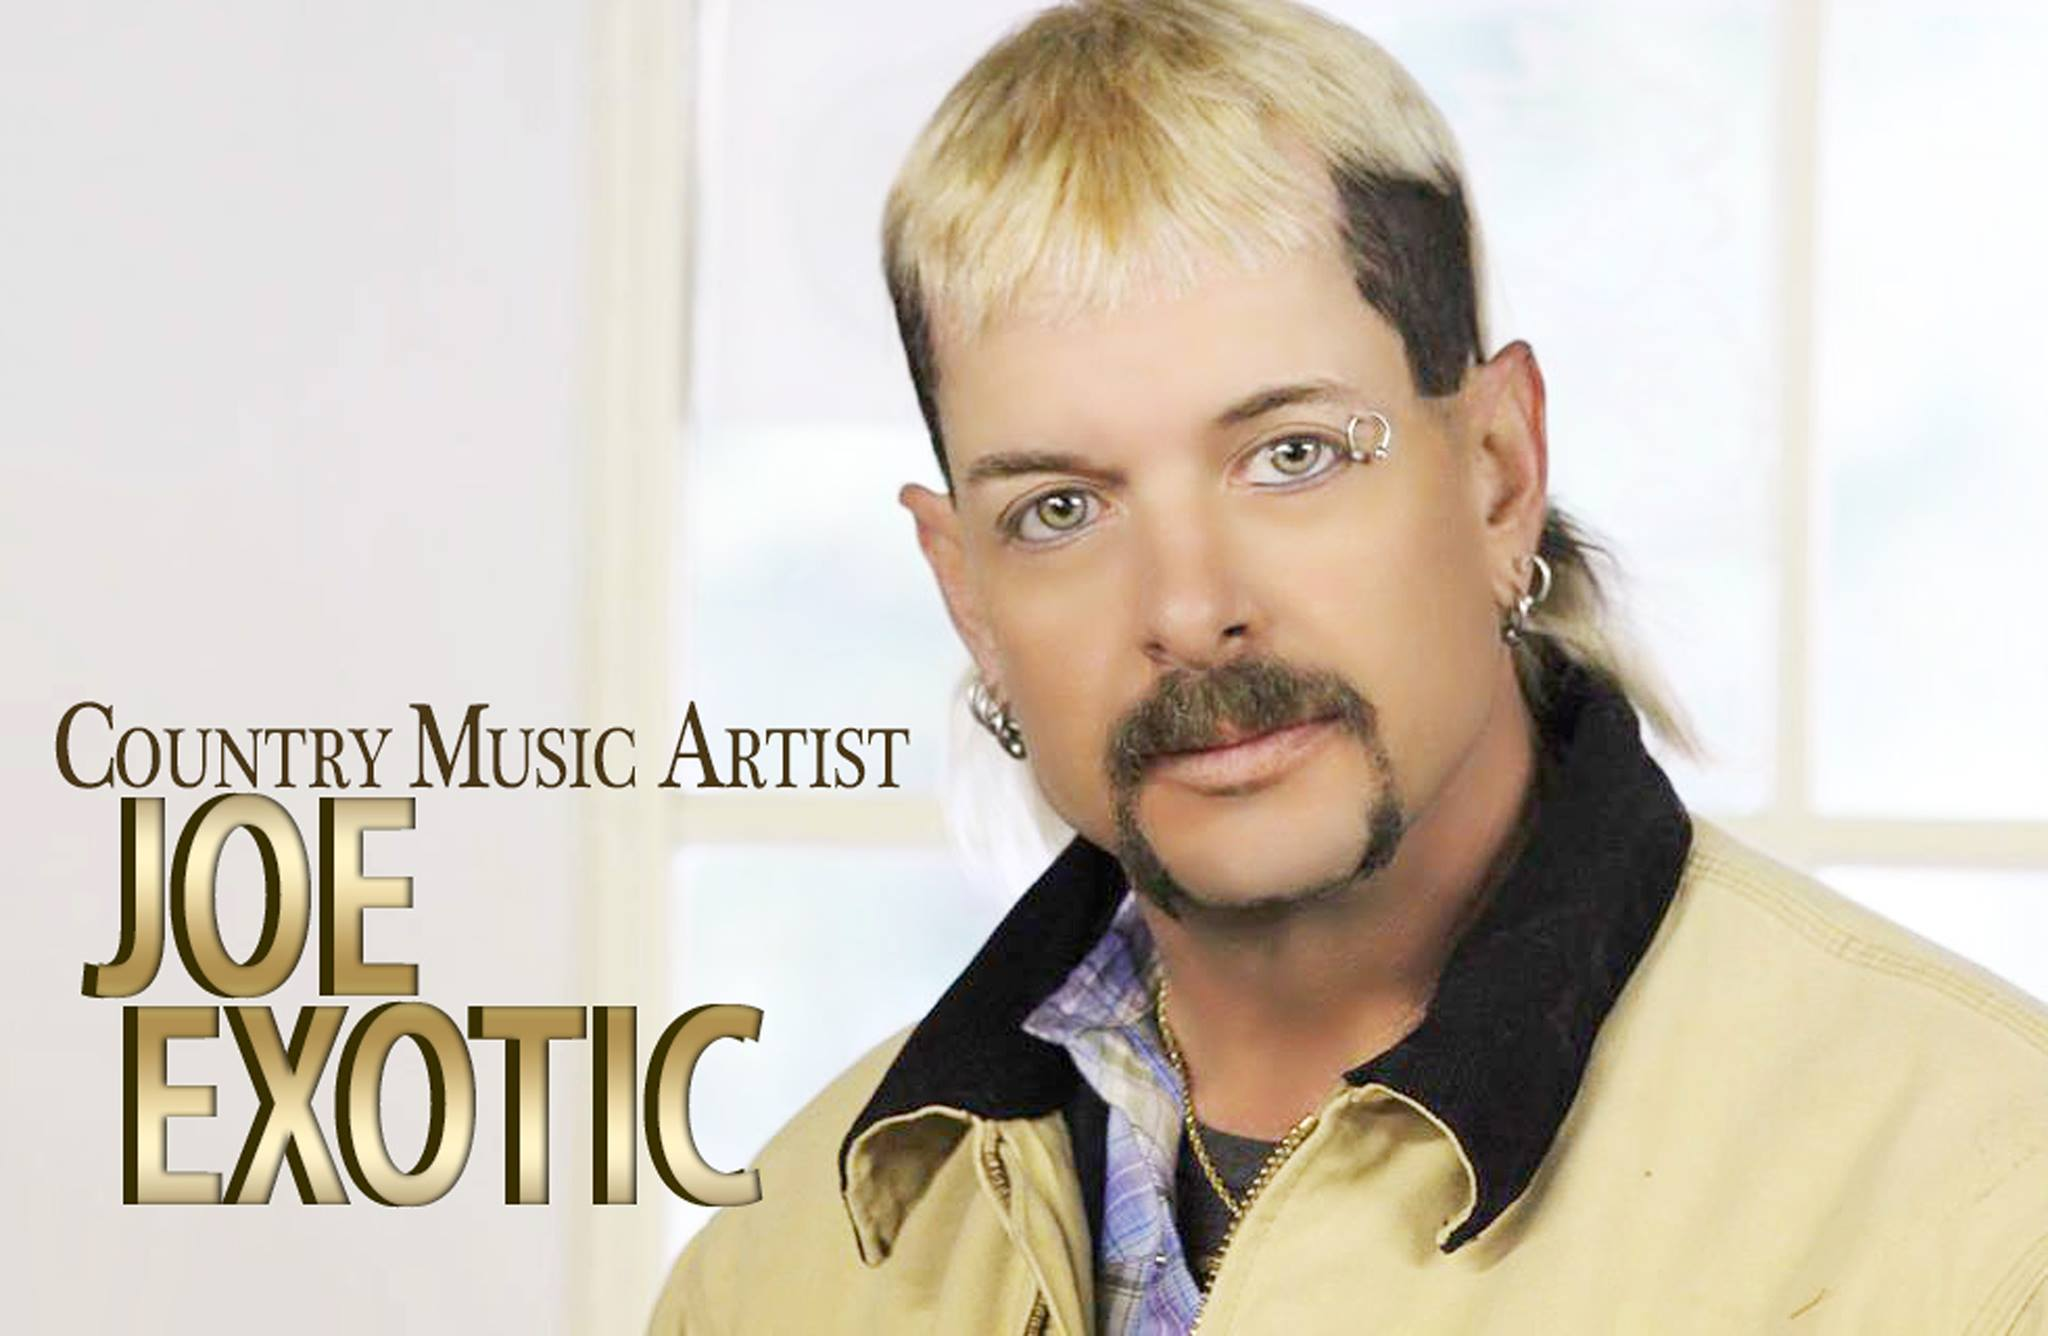 Presidential Announcement >> Joe Exotic's Presidential Campaign is off to a good start… | The Lost Ogle